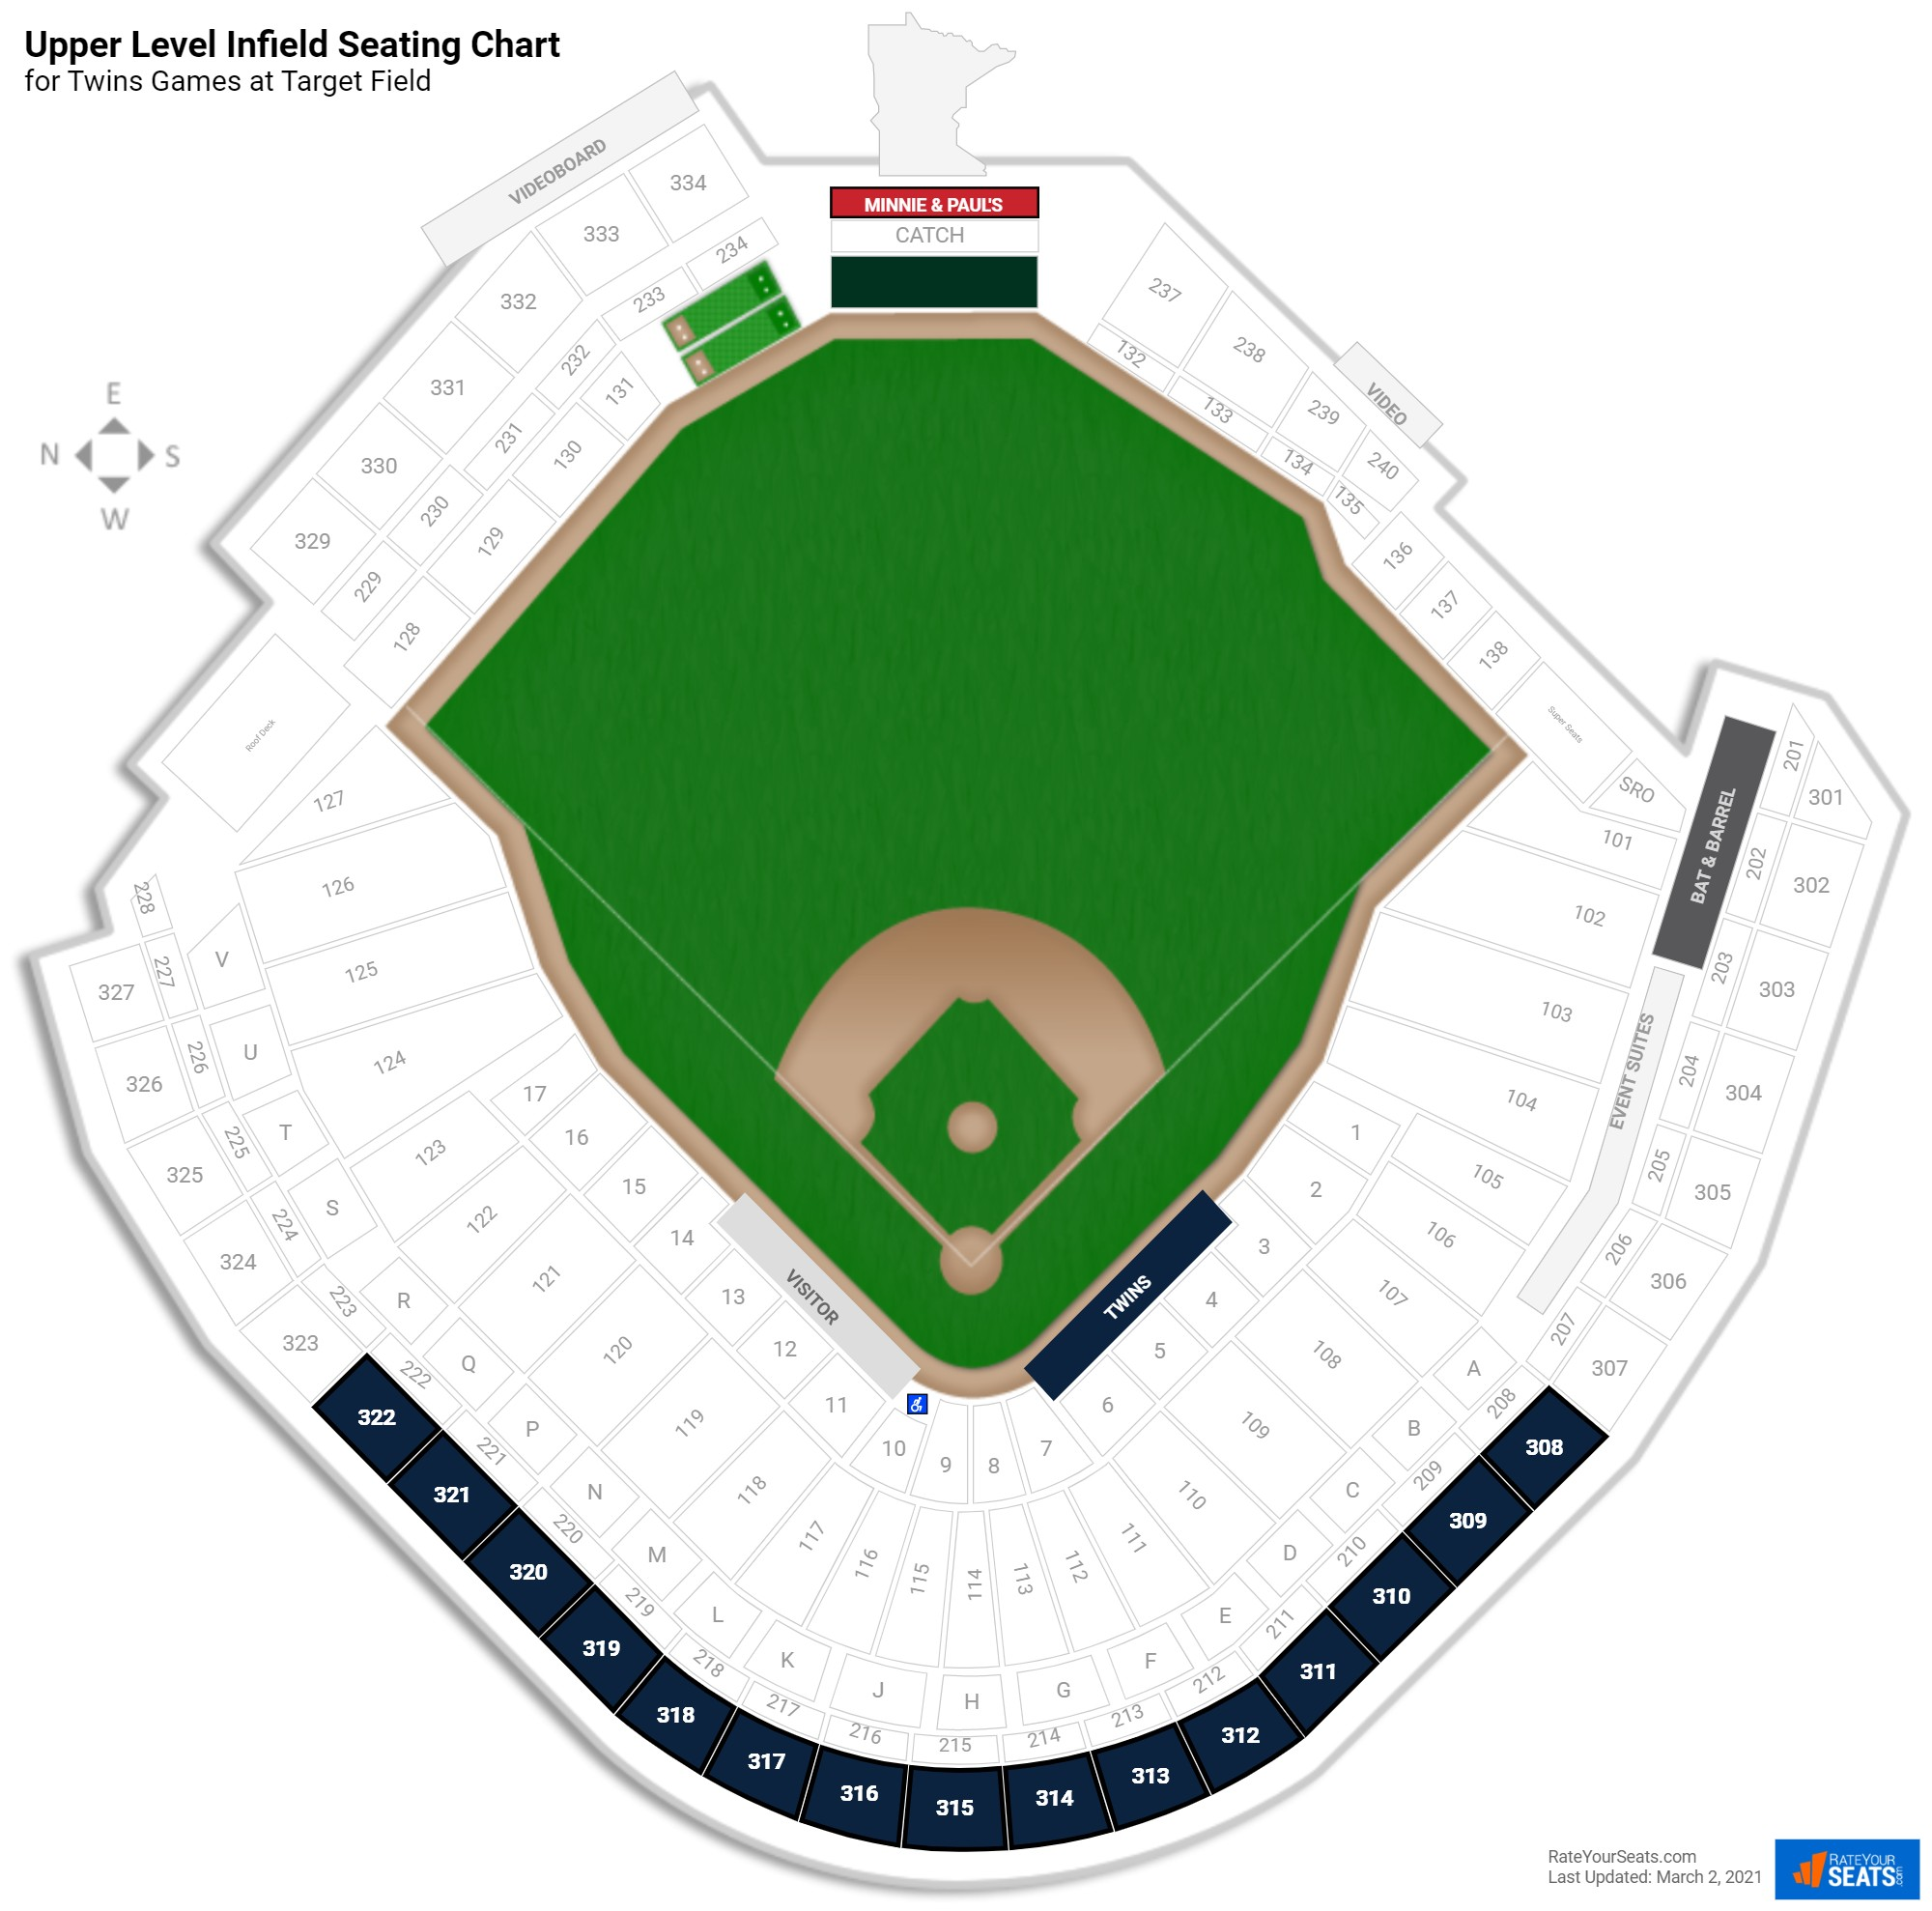 Target Field Upper Level Infield seating chart